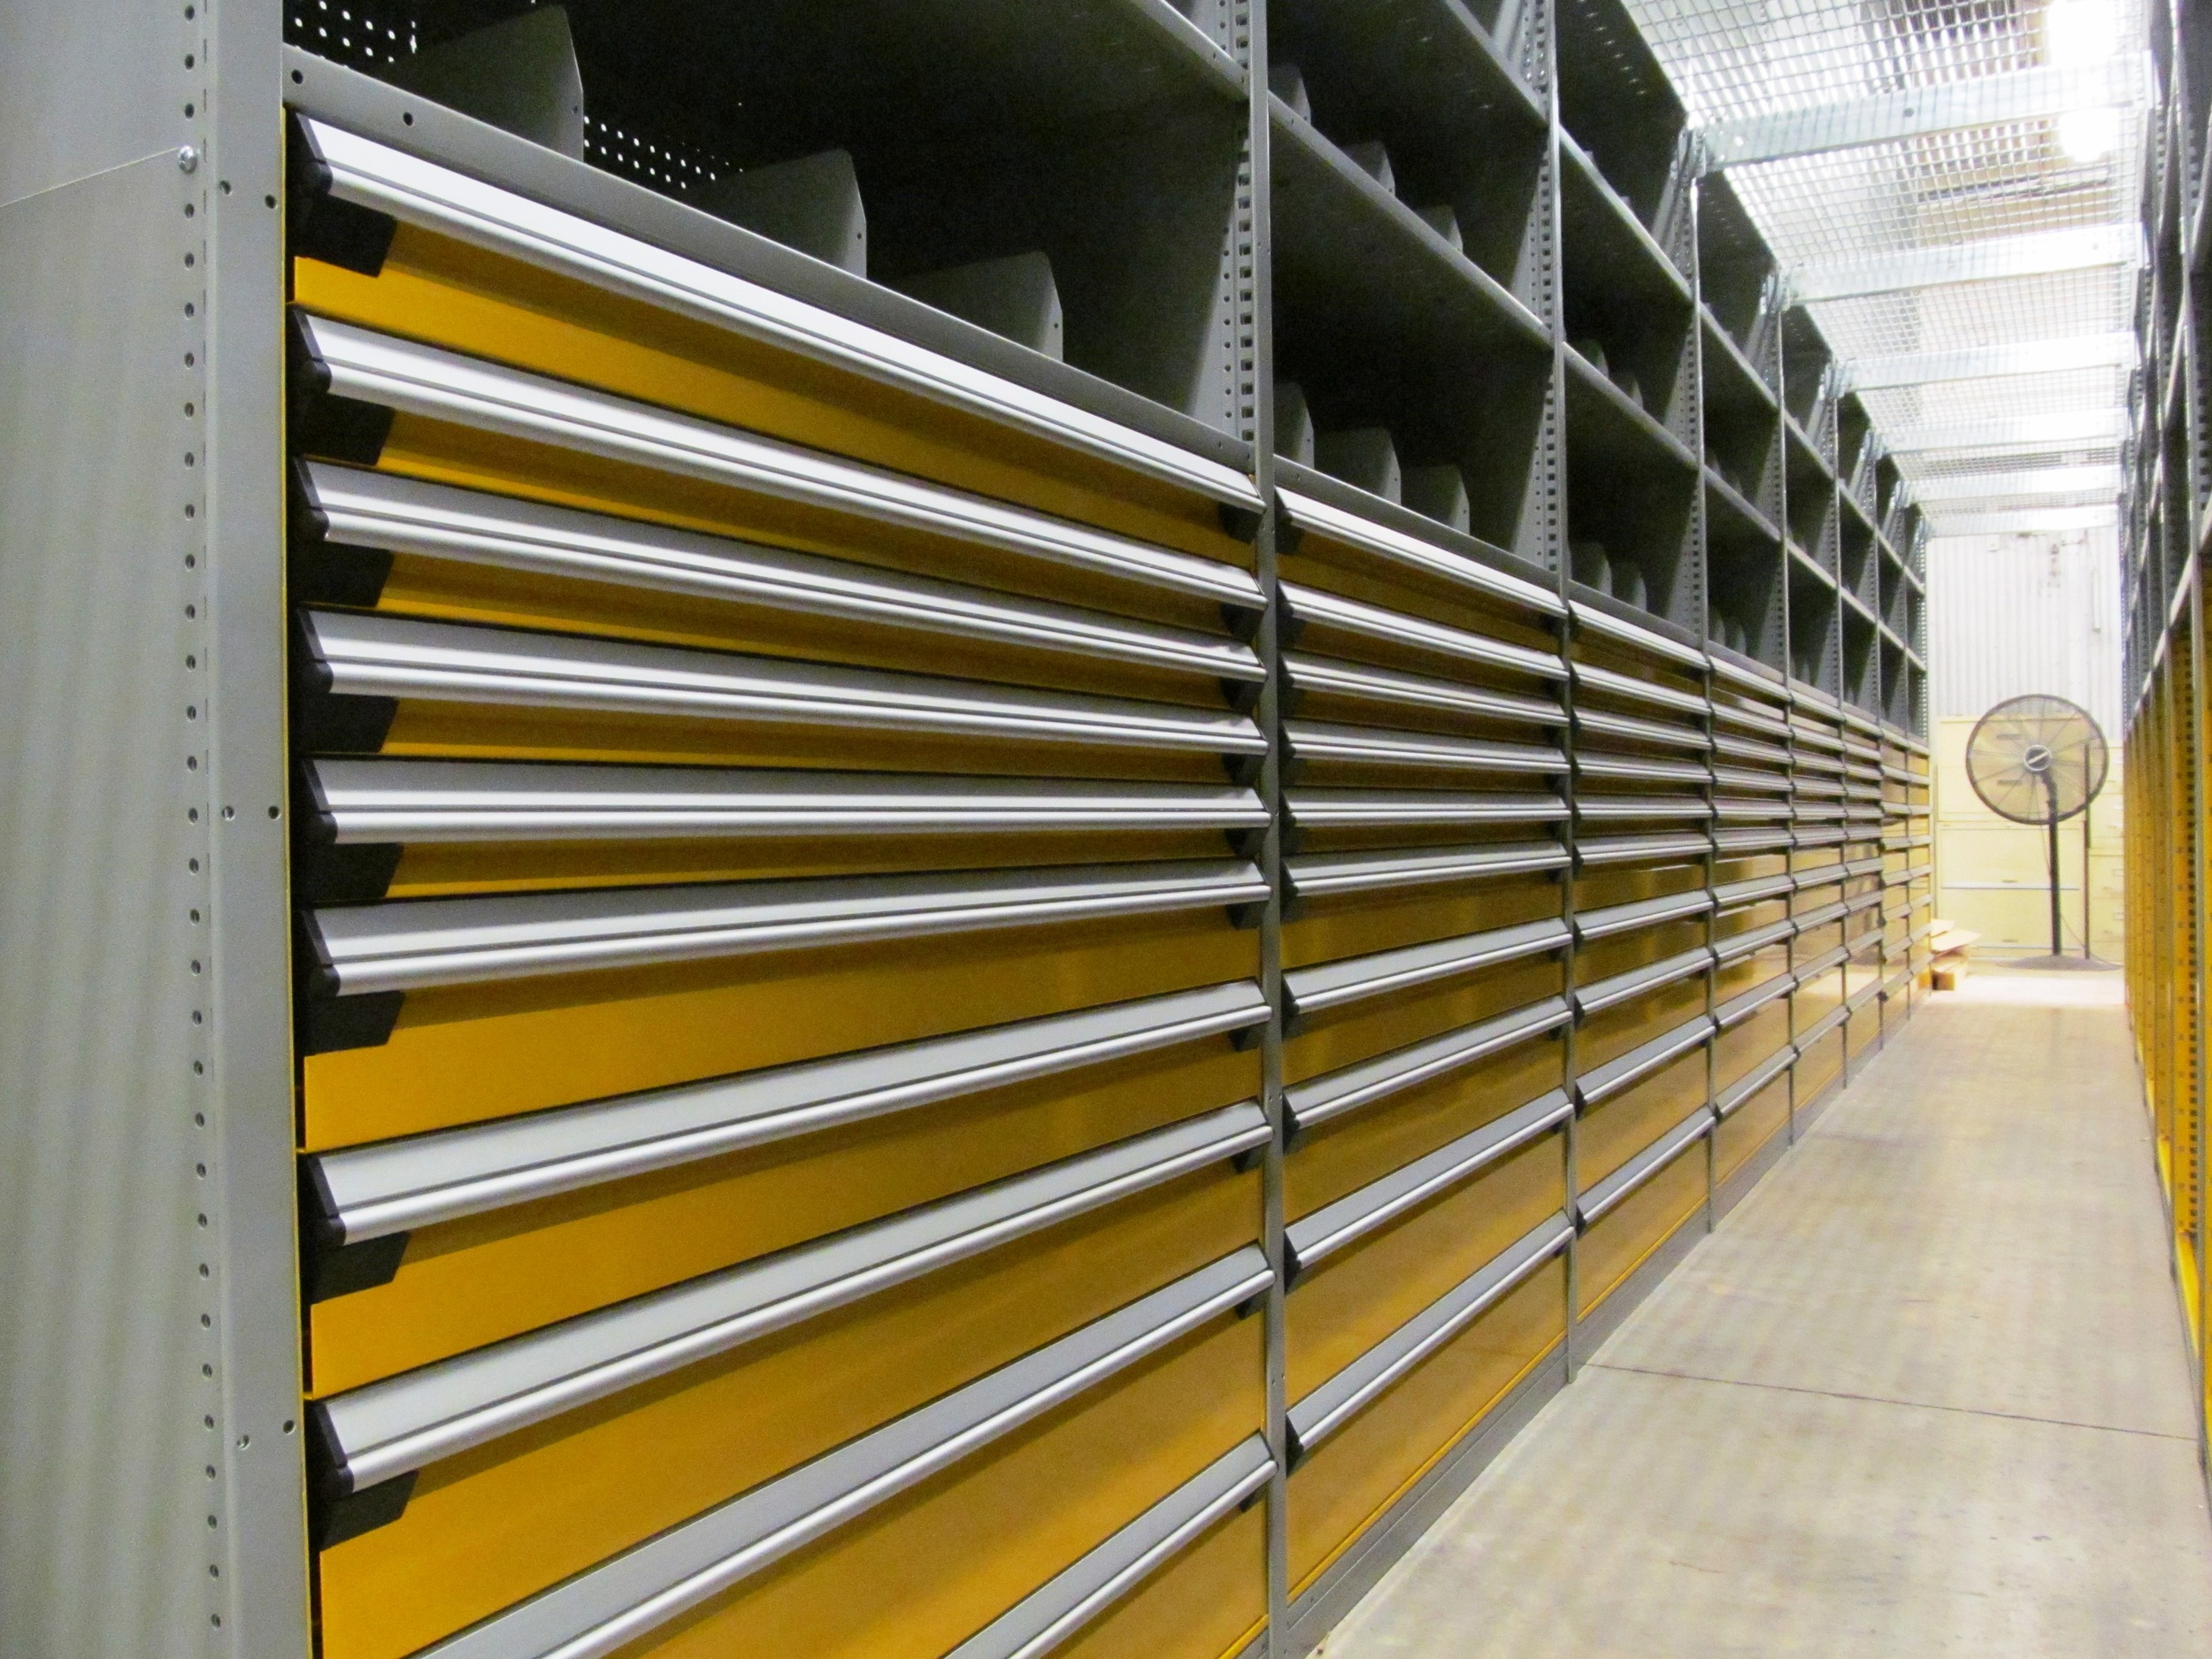 Shelving Systems   Commercial Grade Storage   Learn More